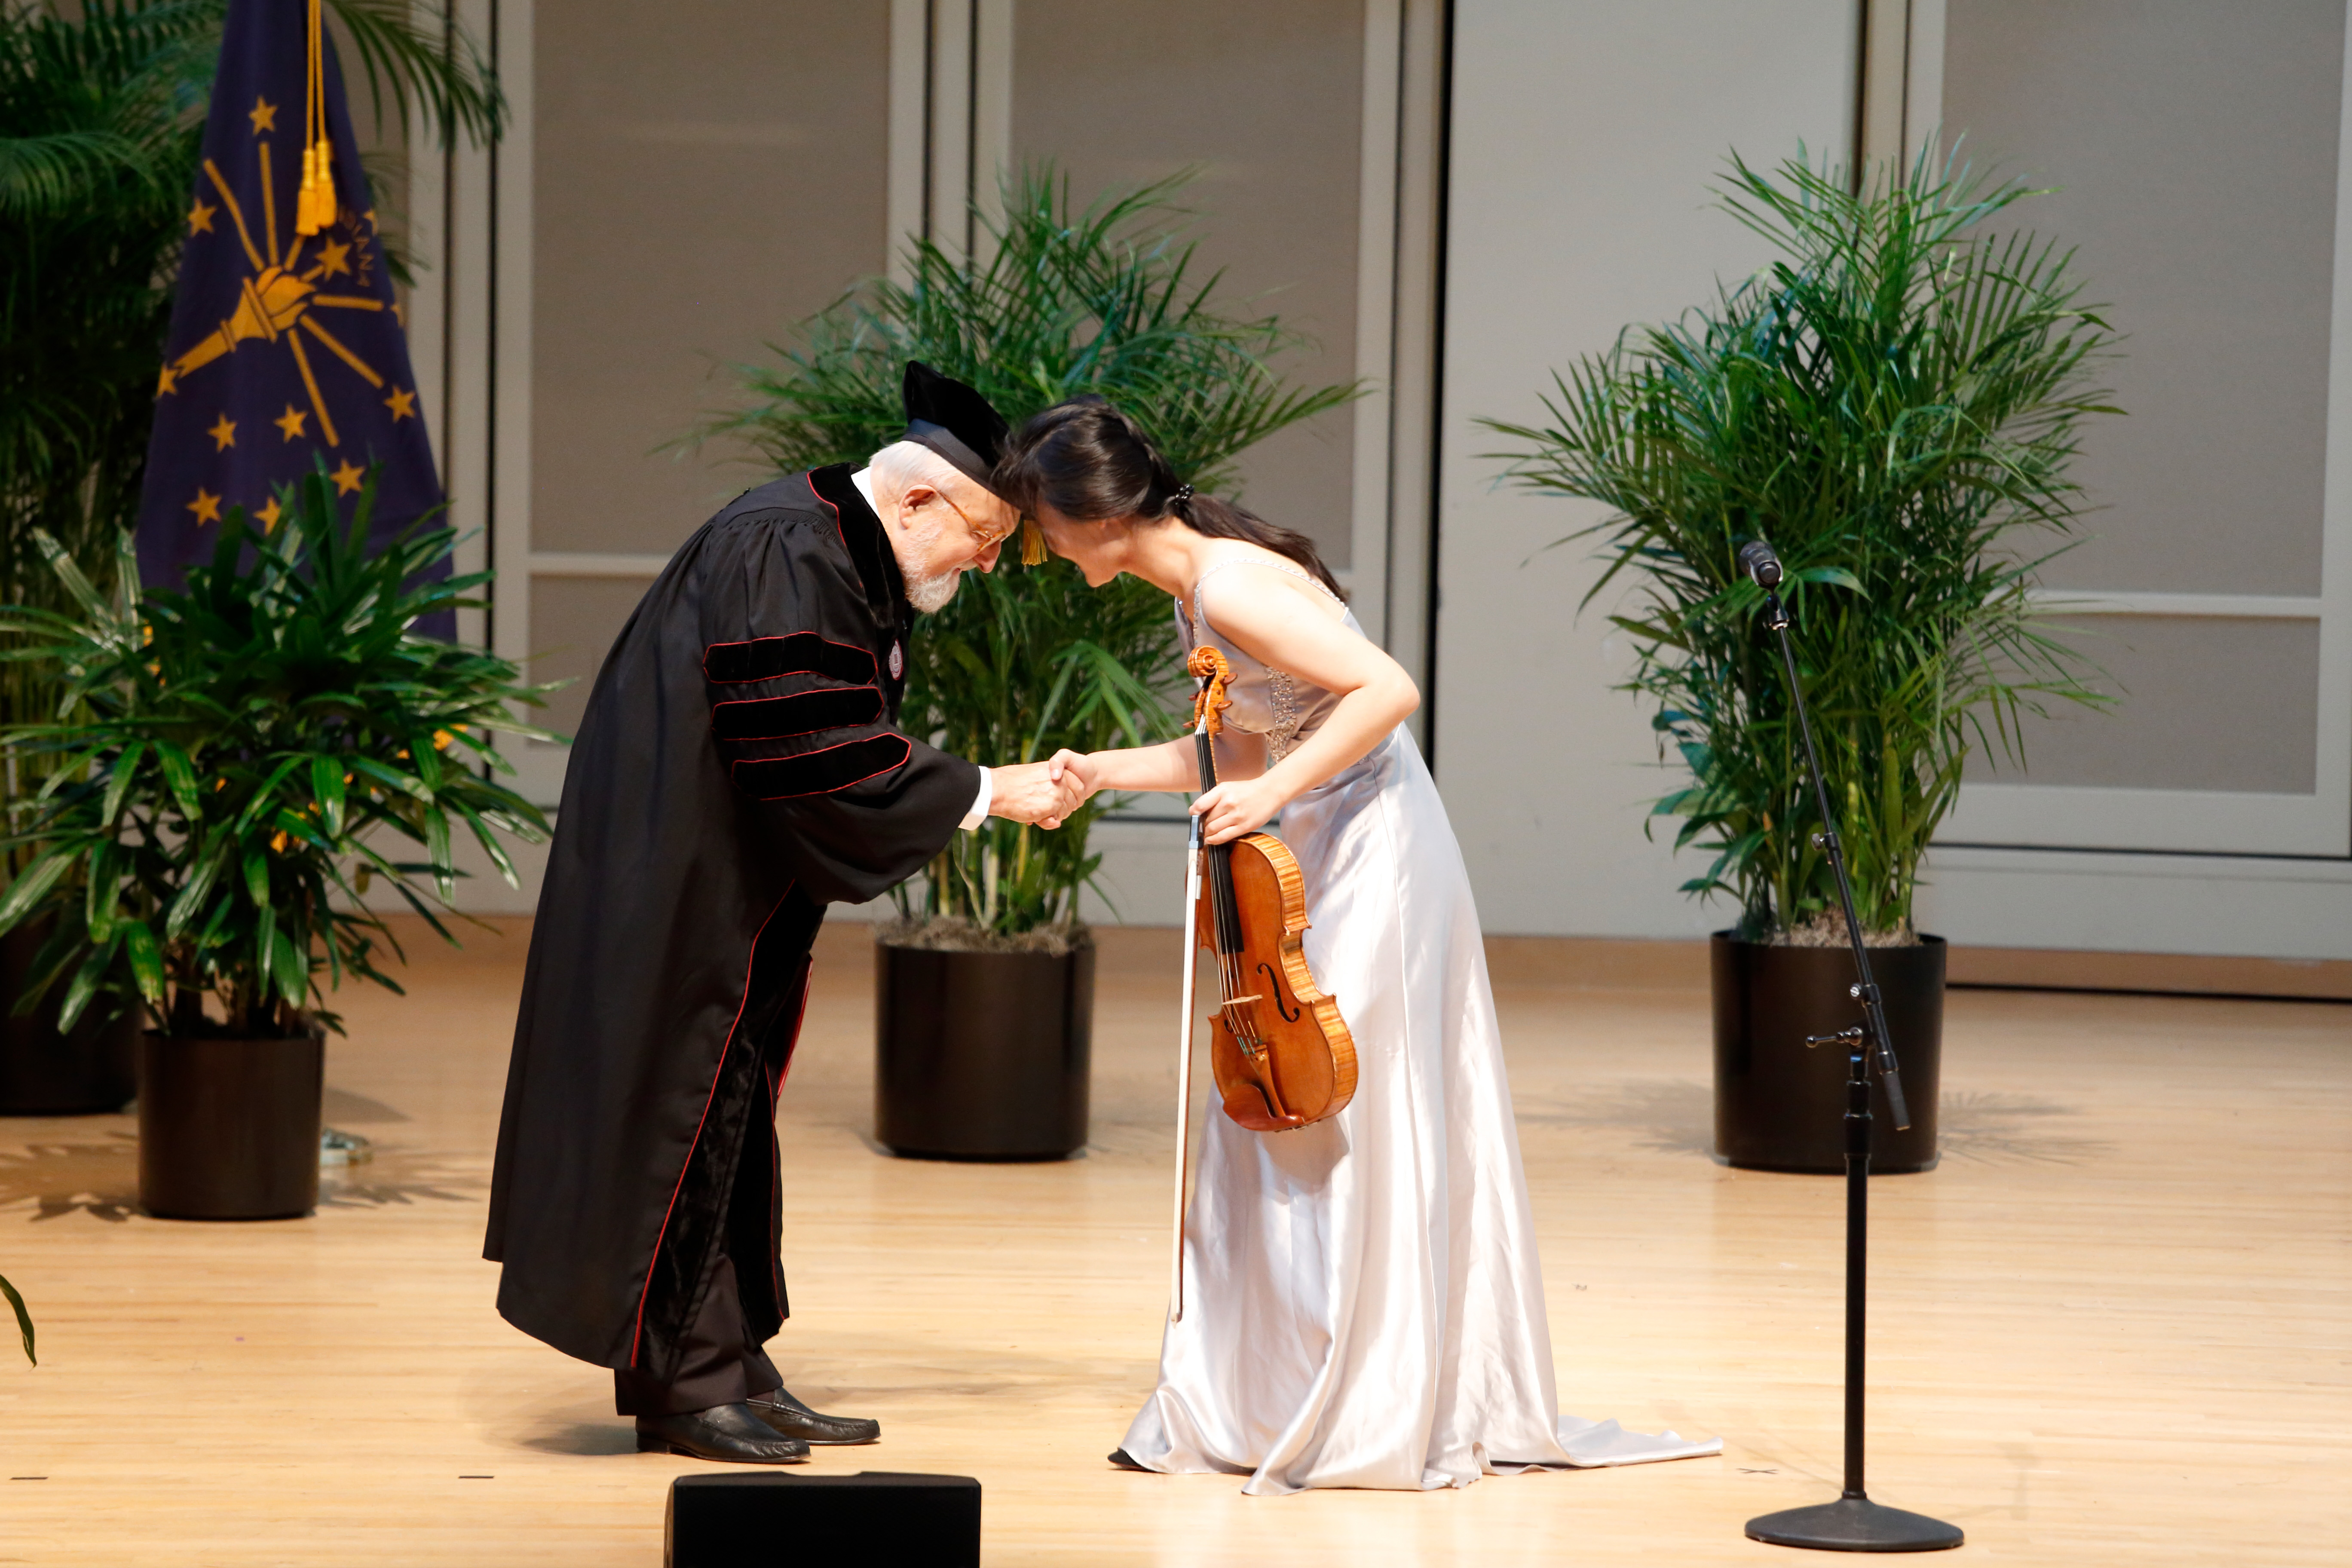 composer bows to violist after her performance of his composition